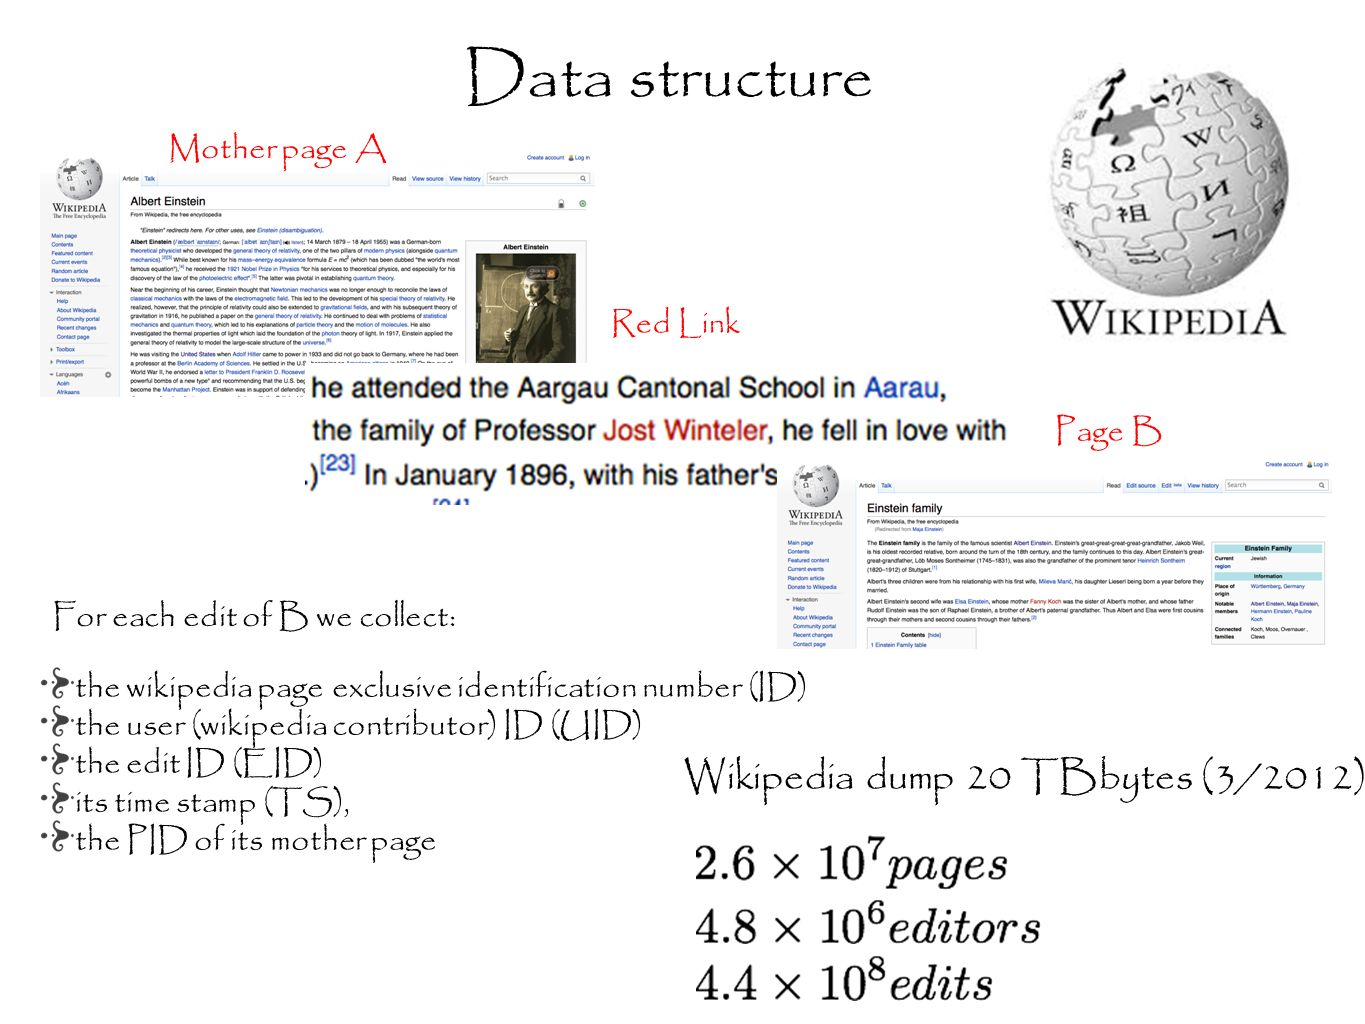 Data structure For each edit of B we collect: the wikipedia page exclusive identification number (ID) the user (wikipedia contributor) ID (UID) the edit ID (EID) its time stamp (TS), the PID of its mother page Wikipedia dump 20 TBbytes (3/2012) Mother page A Red Link Page B